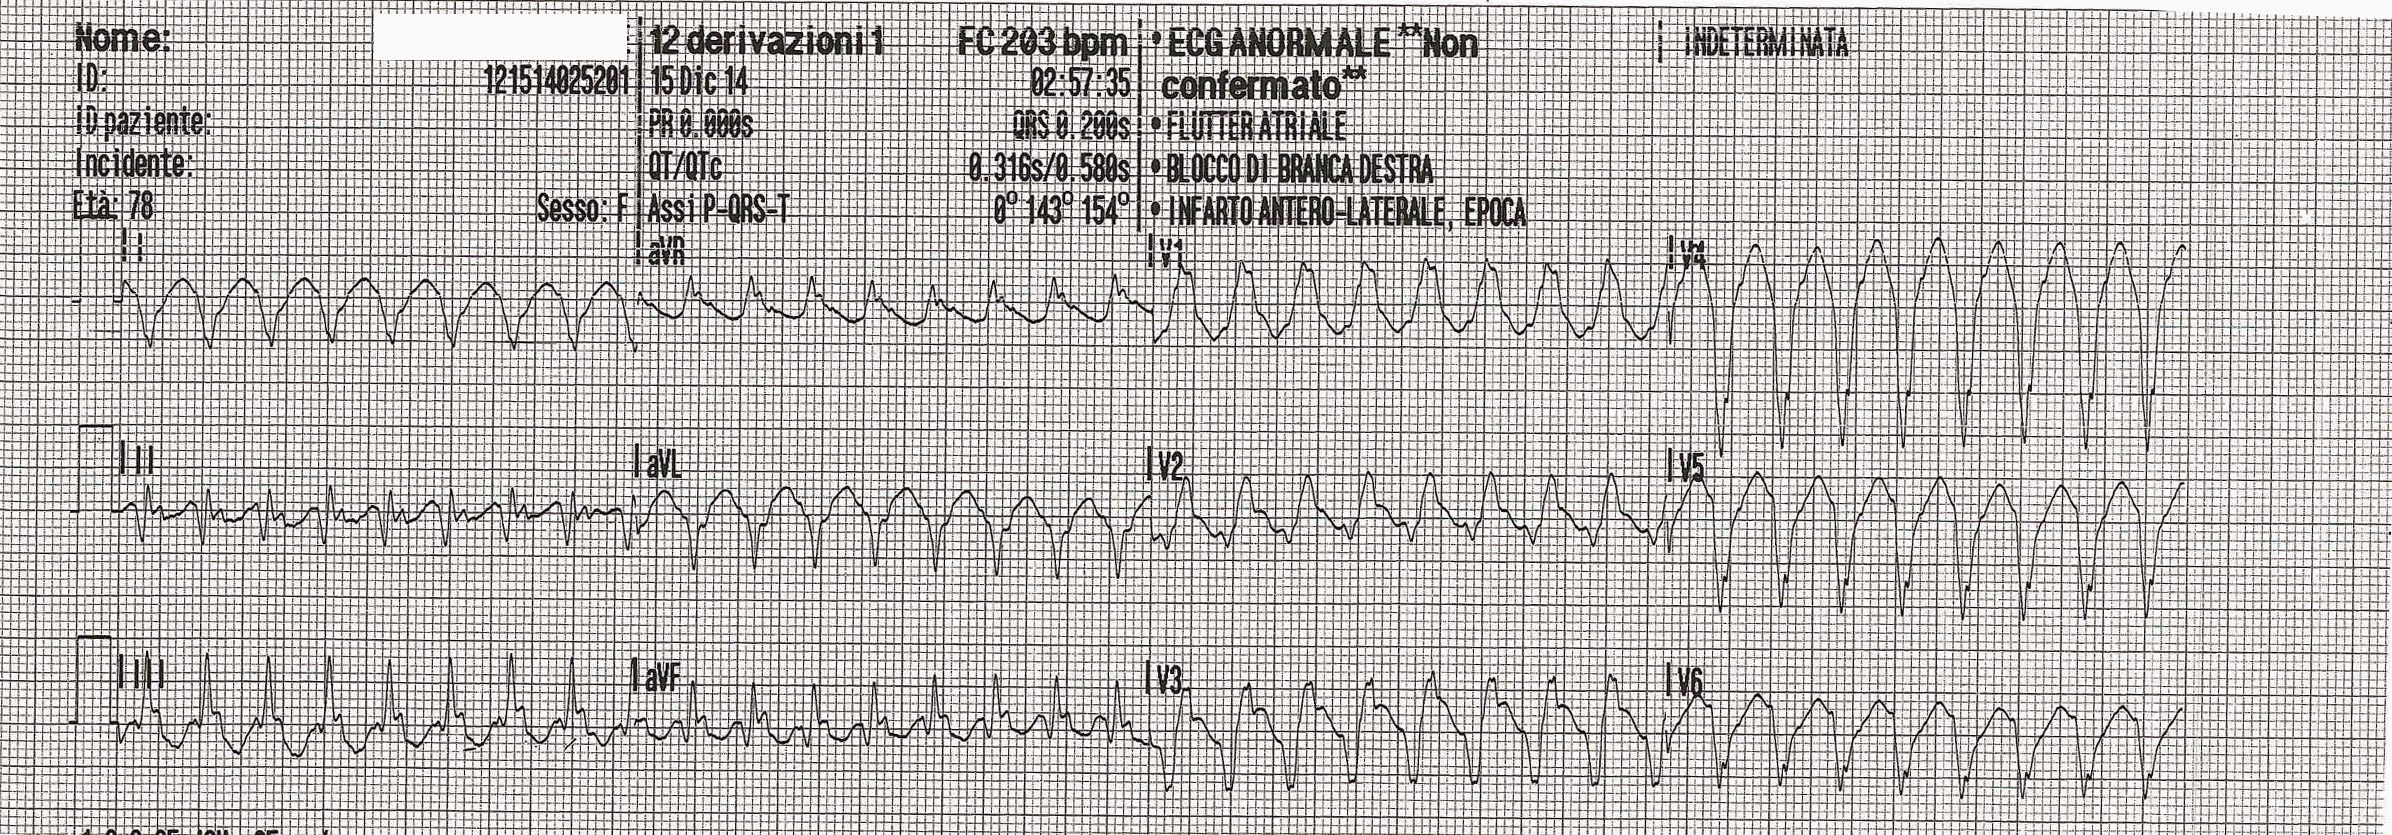 Ectopy Or Aberrancy Ecg Community Comments On A Clinical Case